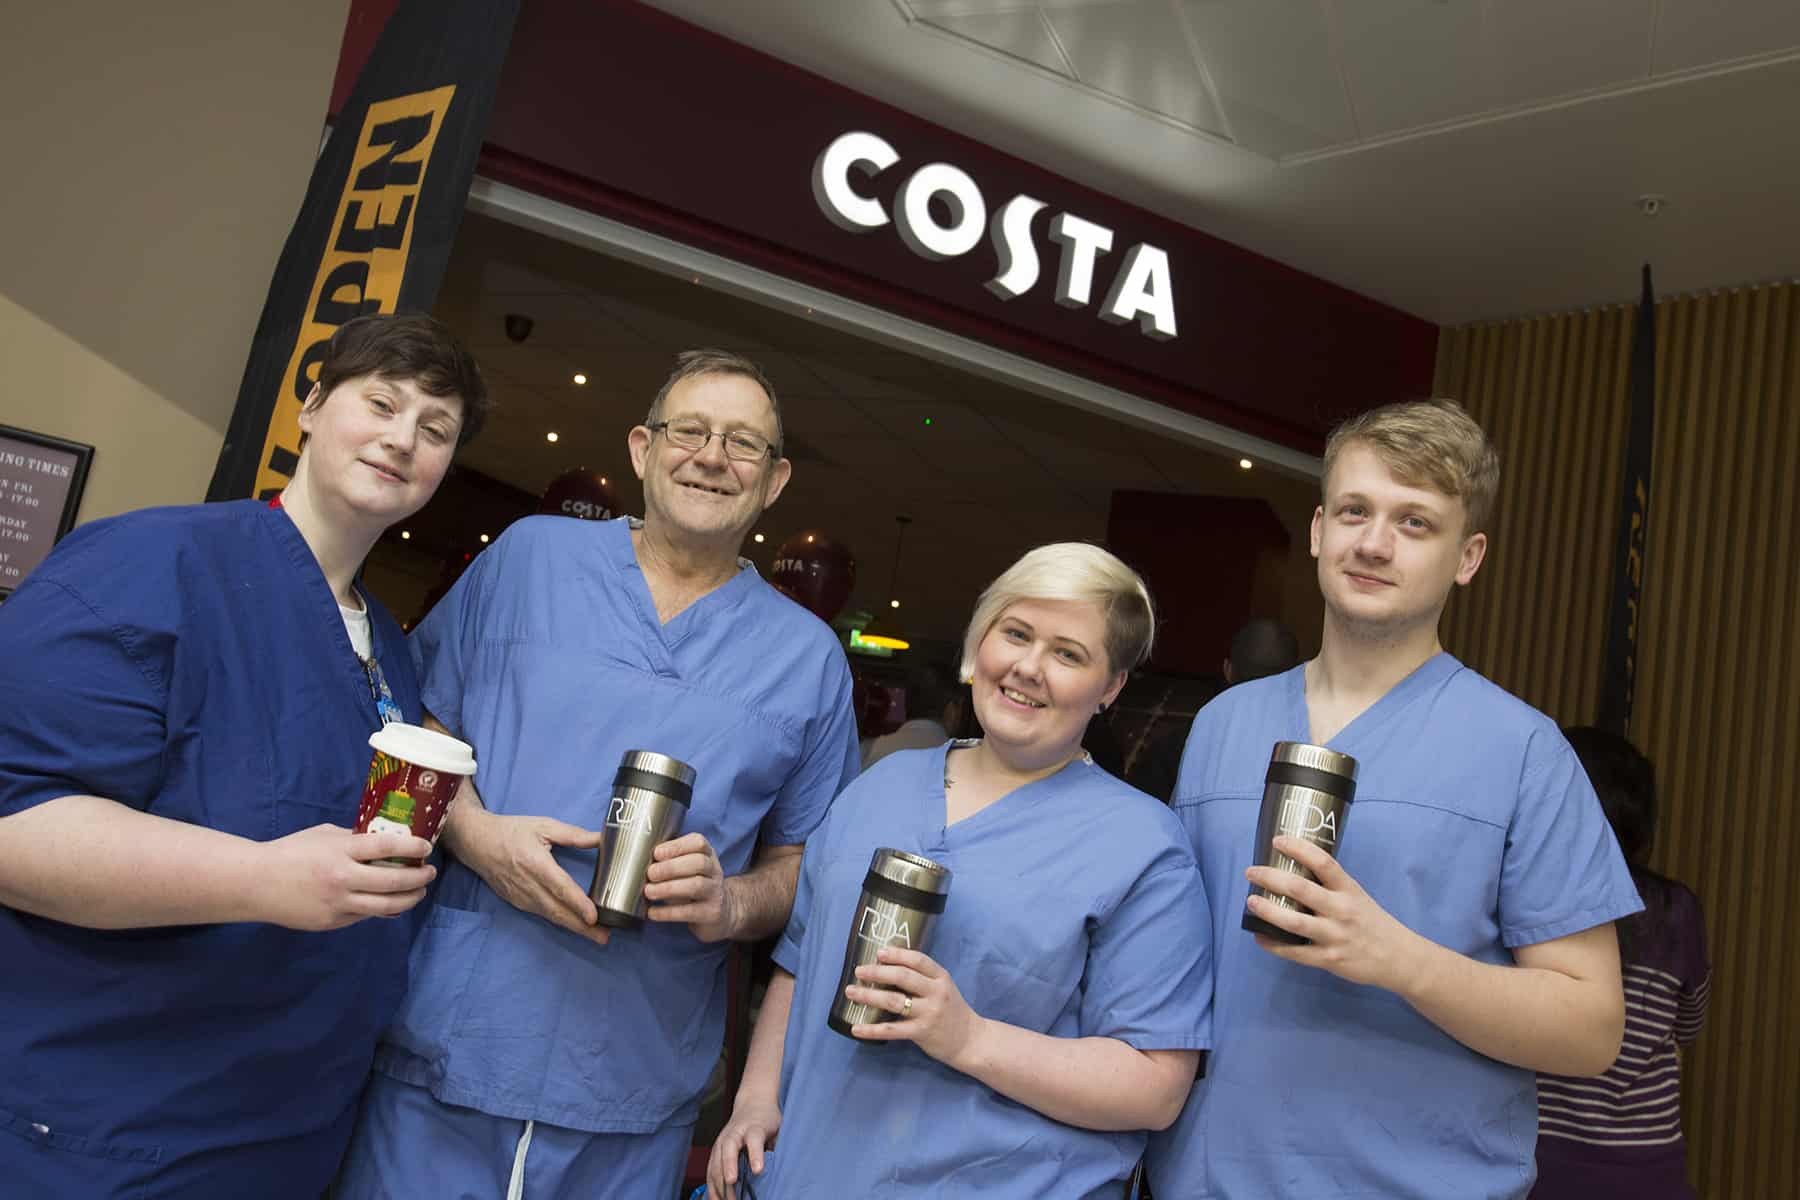 RDA give away reusable mugs as part of new Costa launch